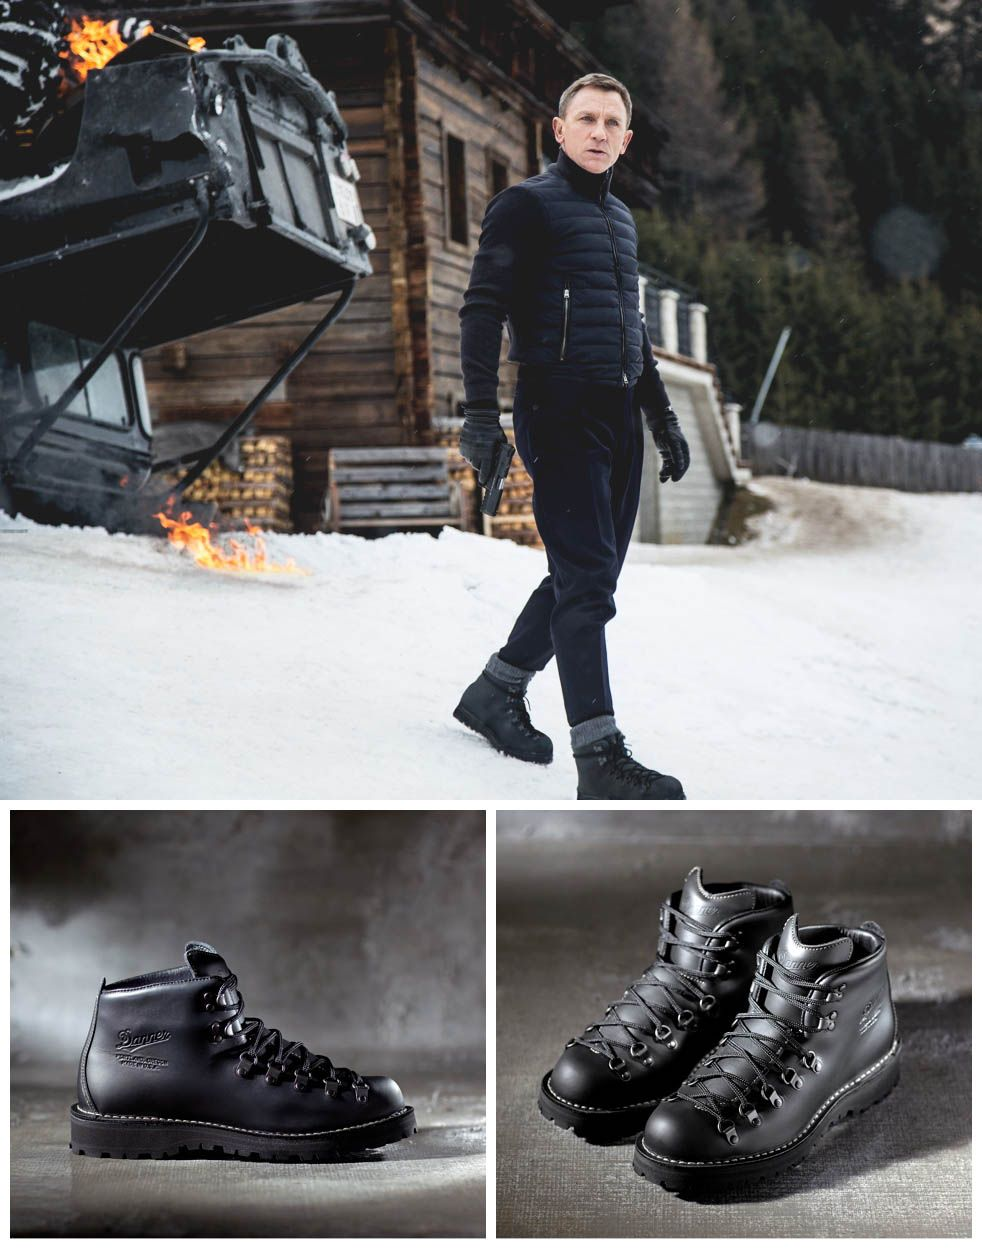 James Bond Boots for Specter by DANNER. #boots #specter # ...